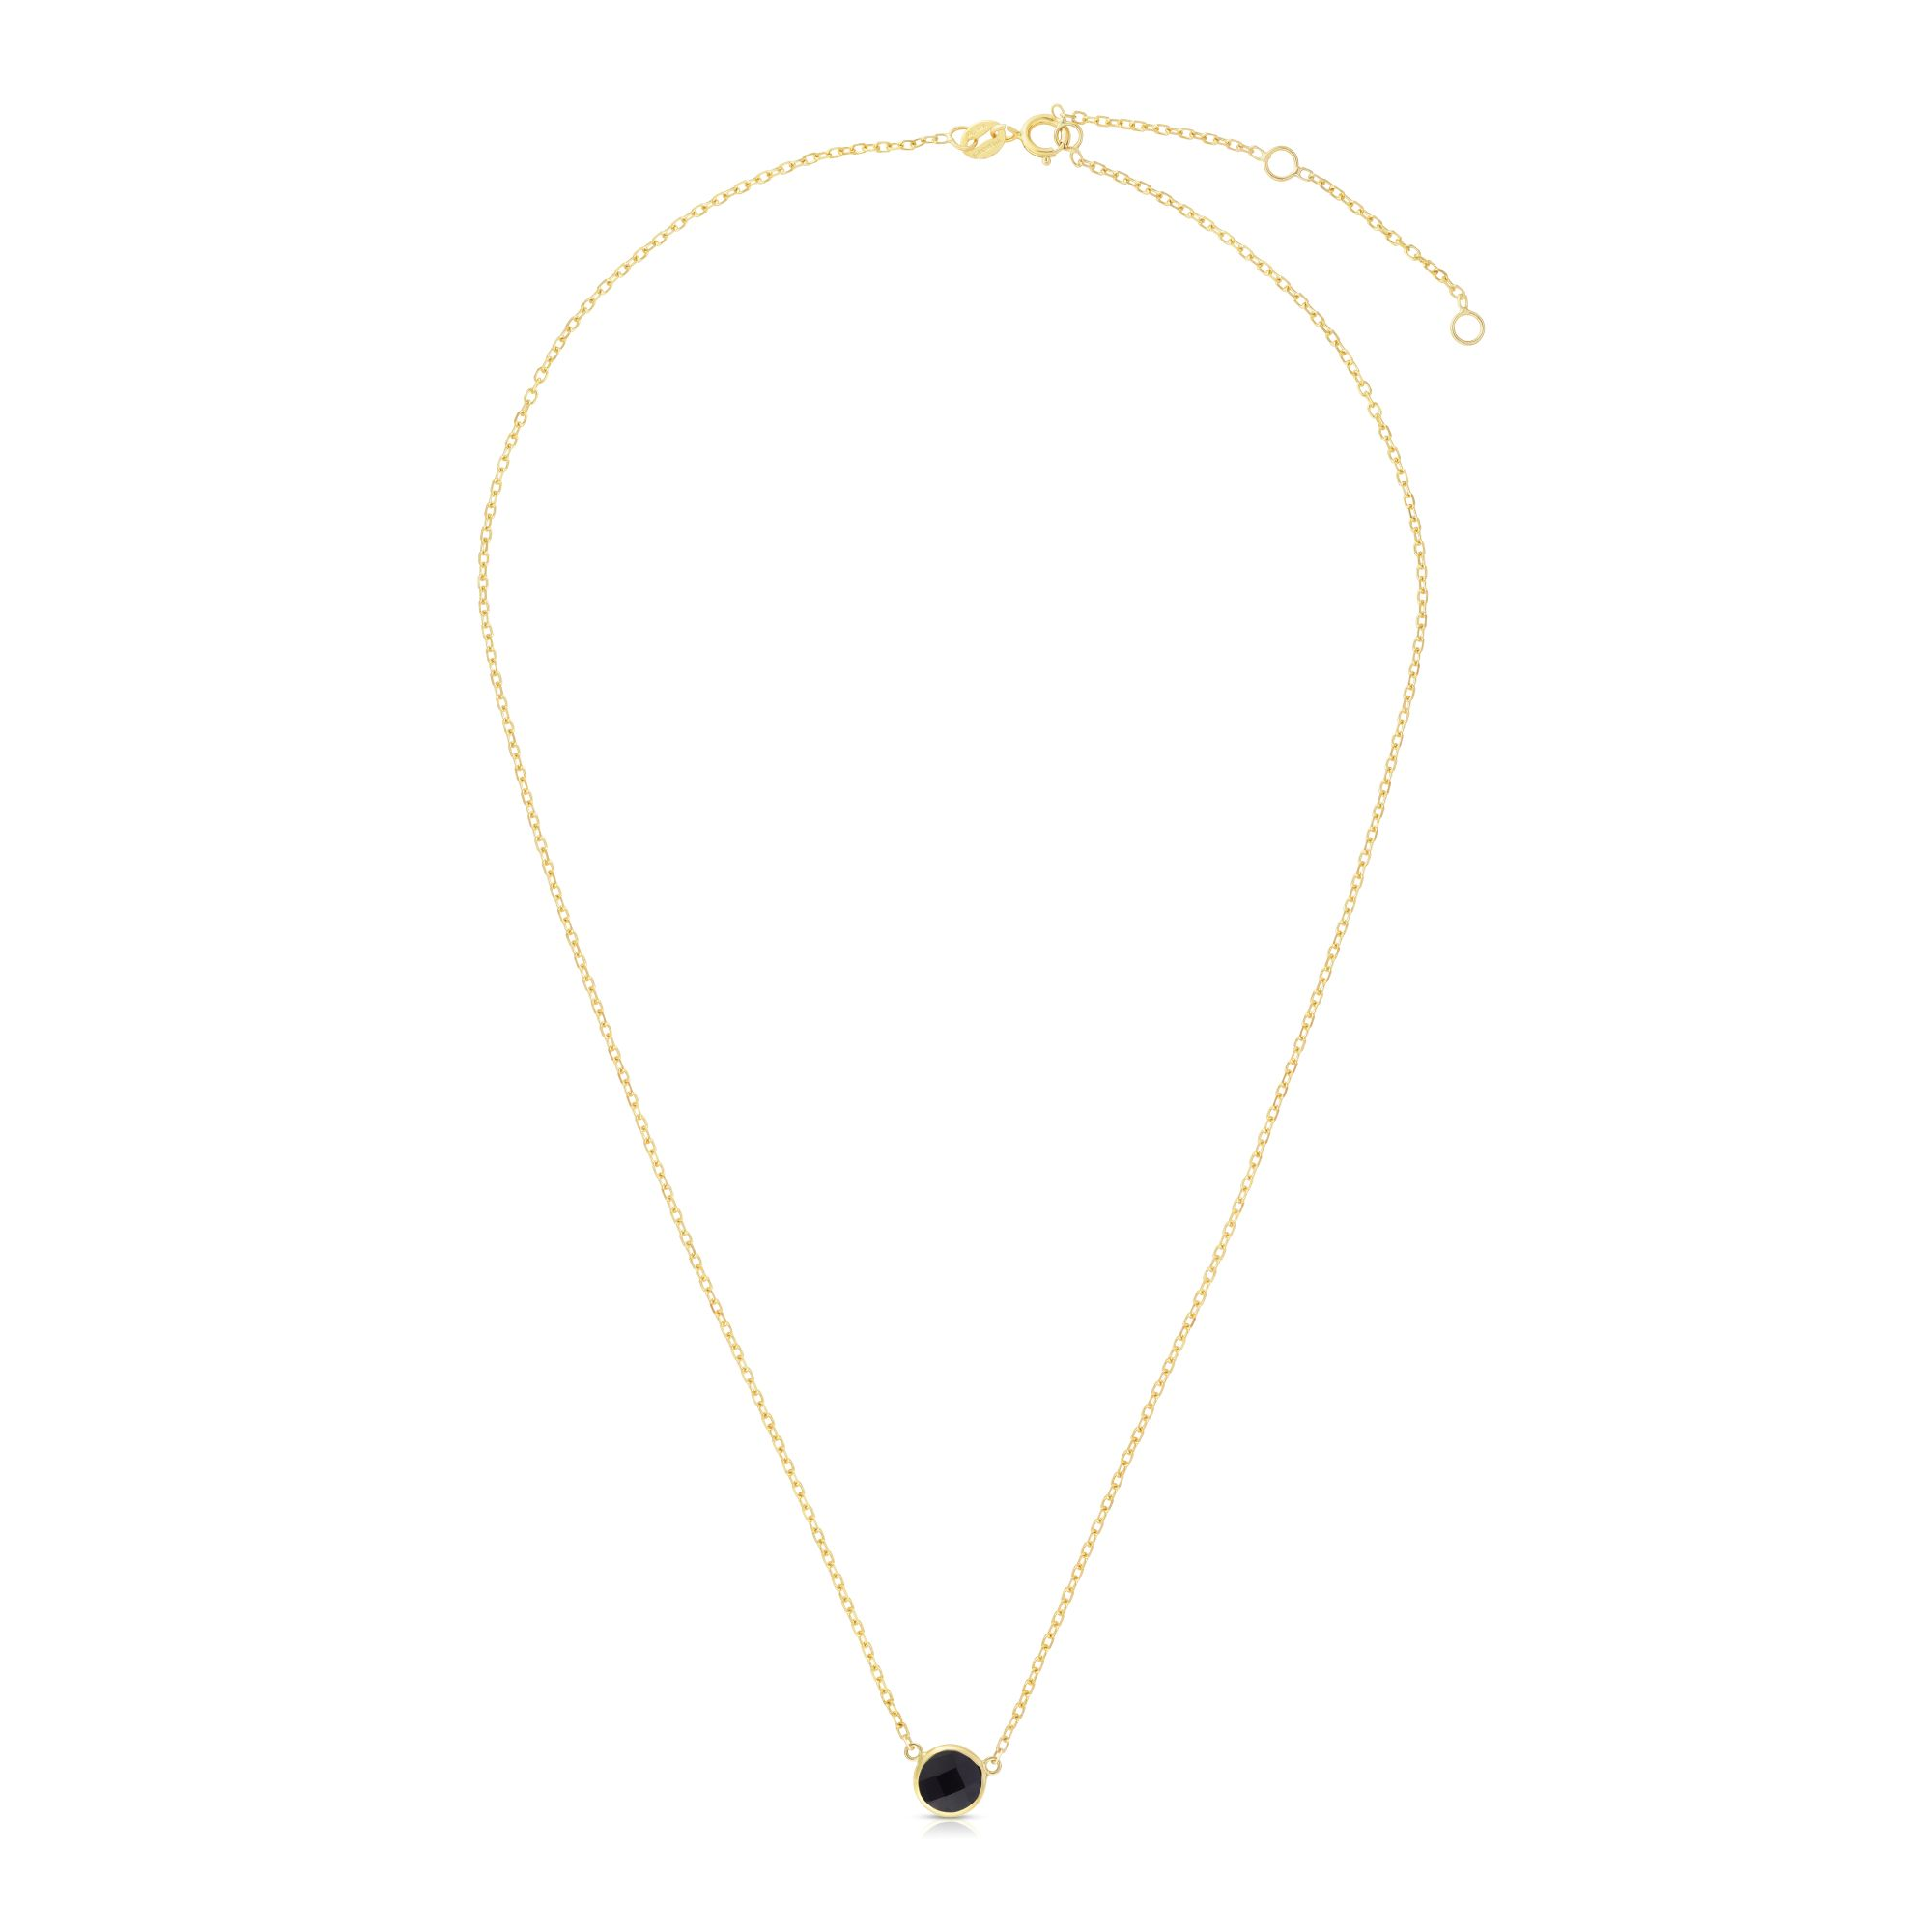 14kt Gold 17 inches Yellow Finish Extendable Colored Stone Necklace with Spring Ring Clasp with 0.9000ct 6mm Round Black Onyx